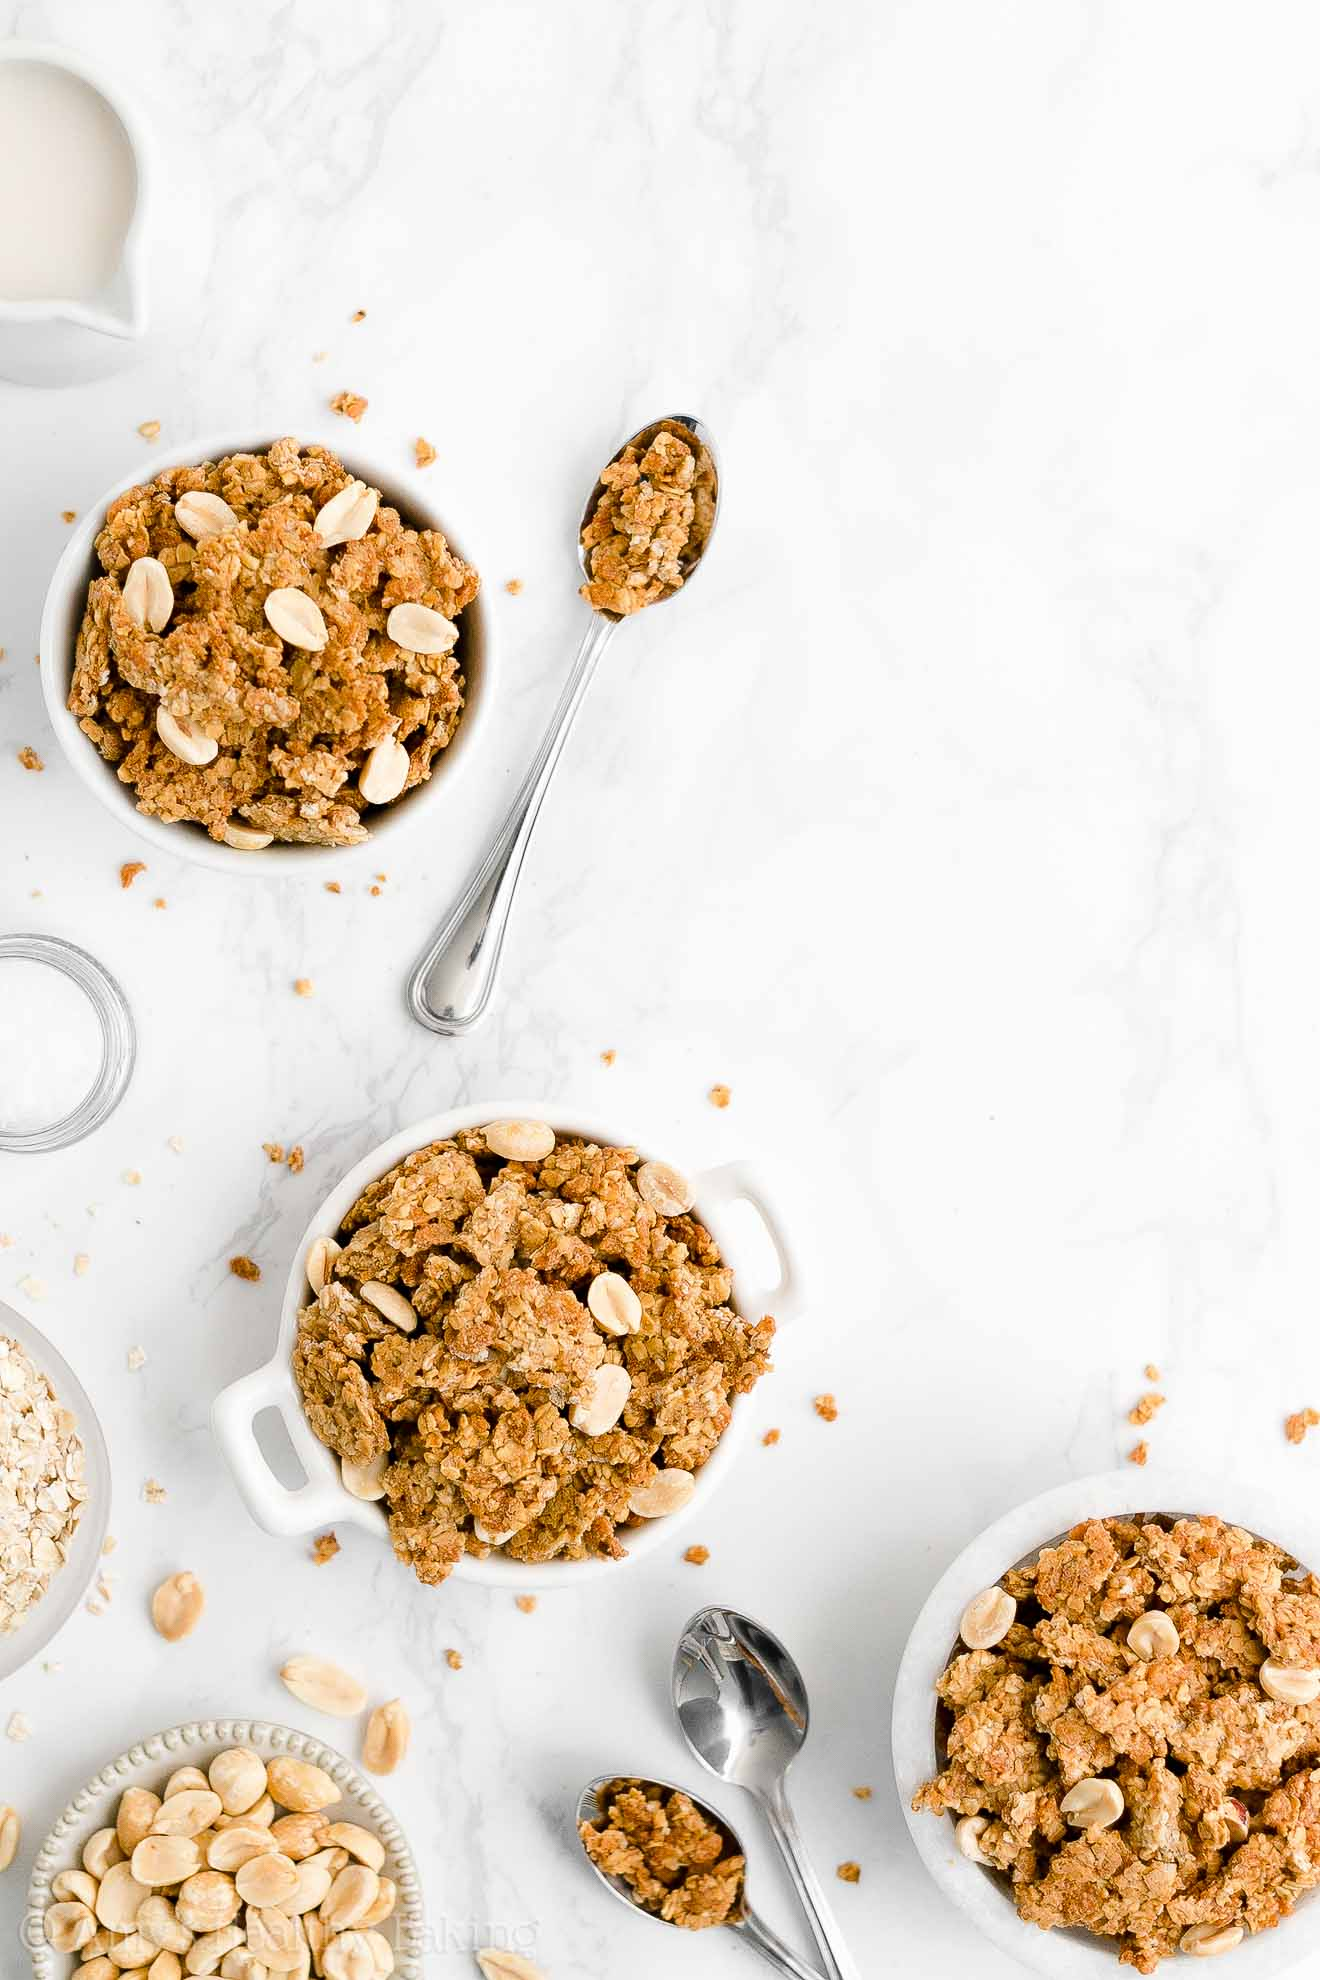 Best Easy Healthy Clean Eating Dairy Free Low Fat Crunchy Peanut Butter Granola